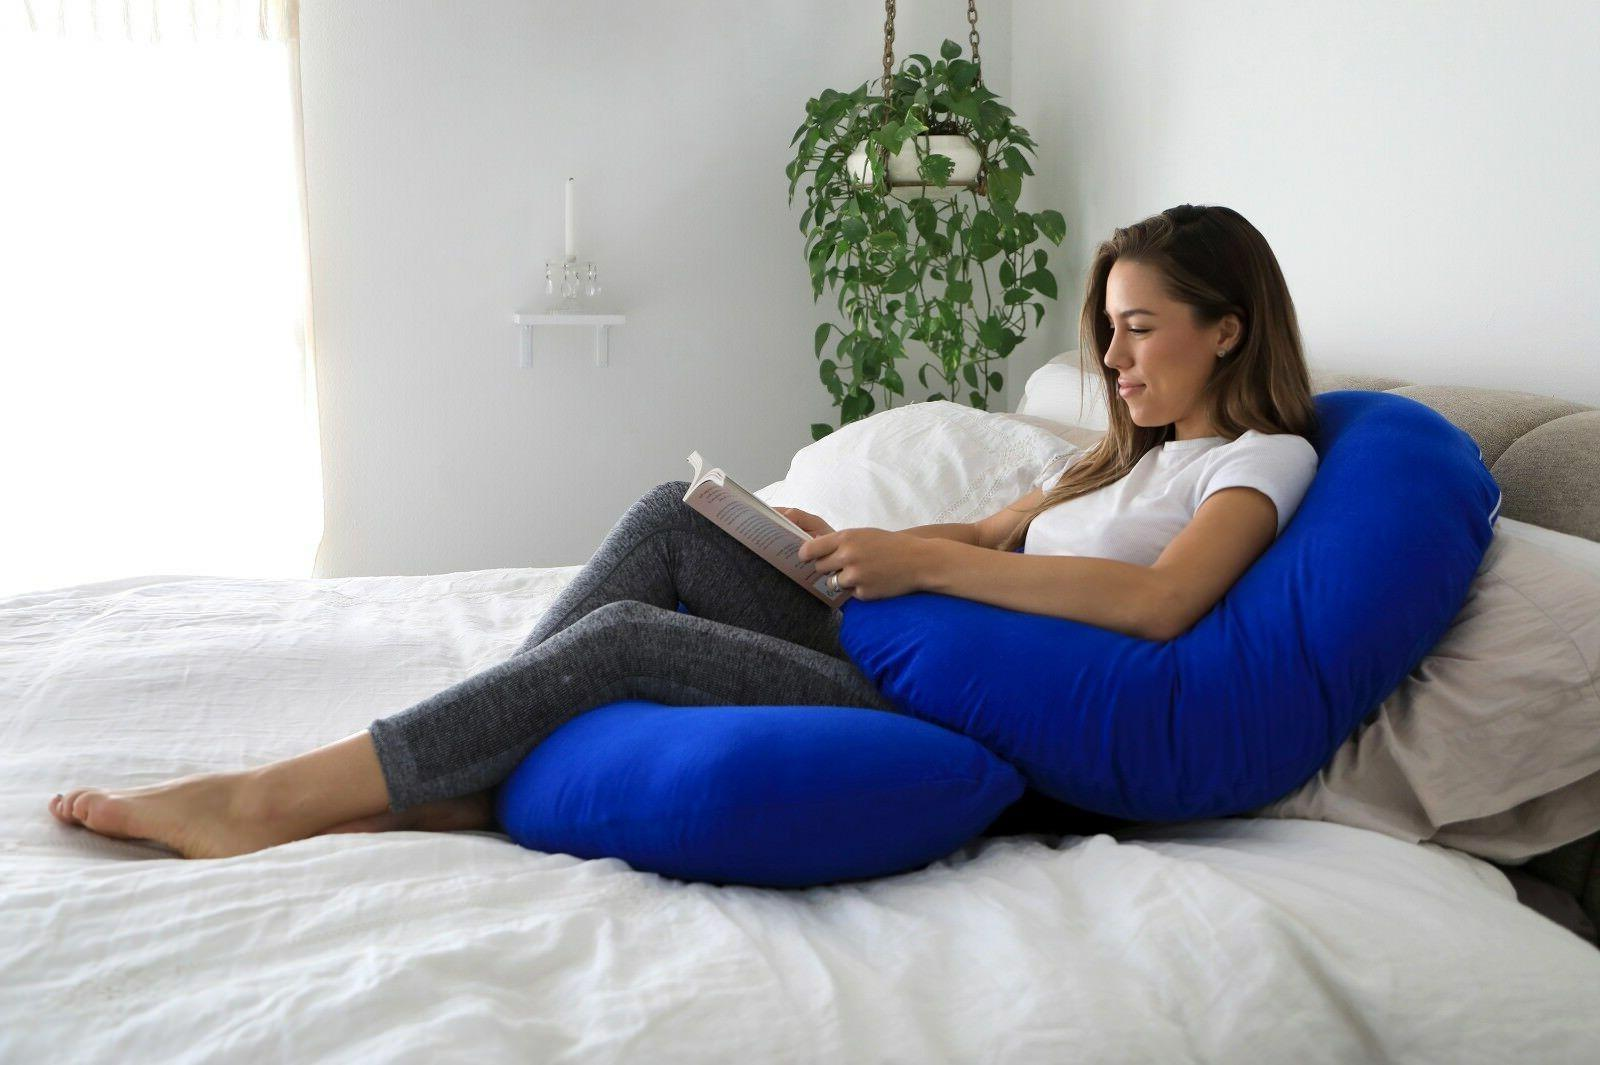 Pregnancy Pillow - Full Body Pillow for Maternity & PharMeDoc